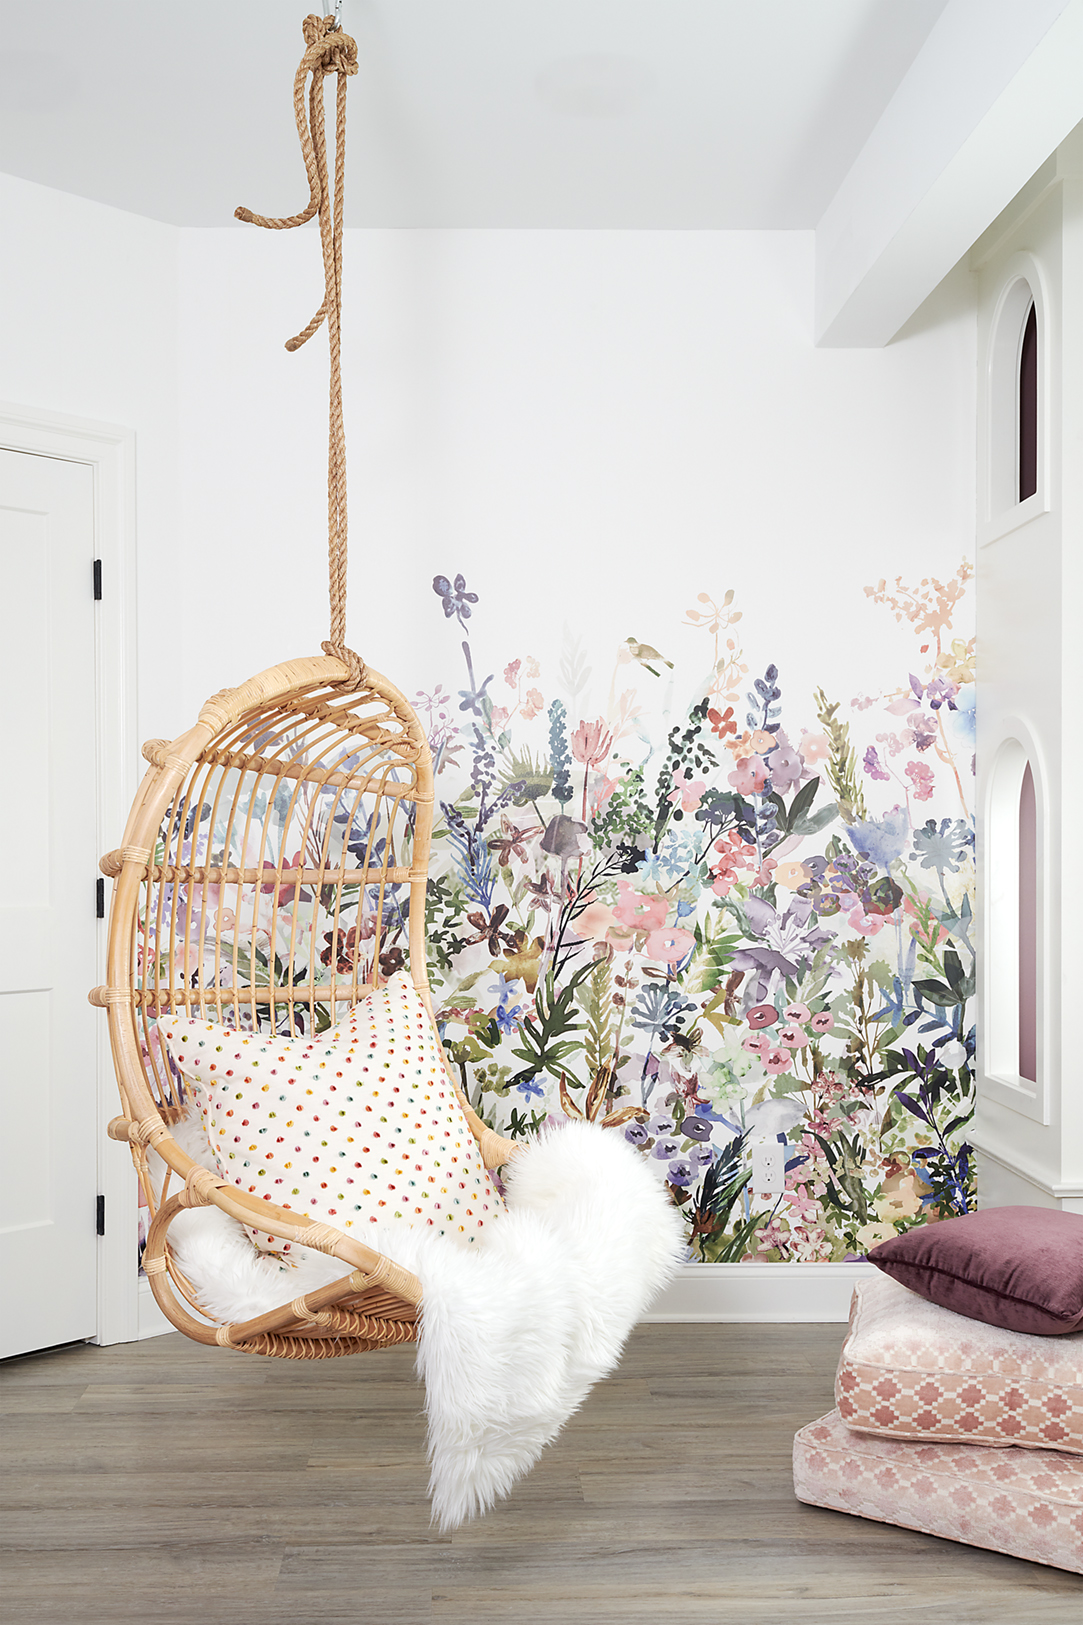 The floral mural on the left wall adds brightness to the space and includes all of the fun colors these girls love to tie together the room. Big, comfy floor pillows are great for adding softness for lounging. The luxury vinyl plank flooring also extends into this space for easy cleanup from art projects.